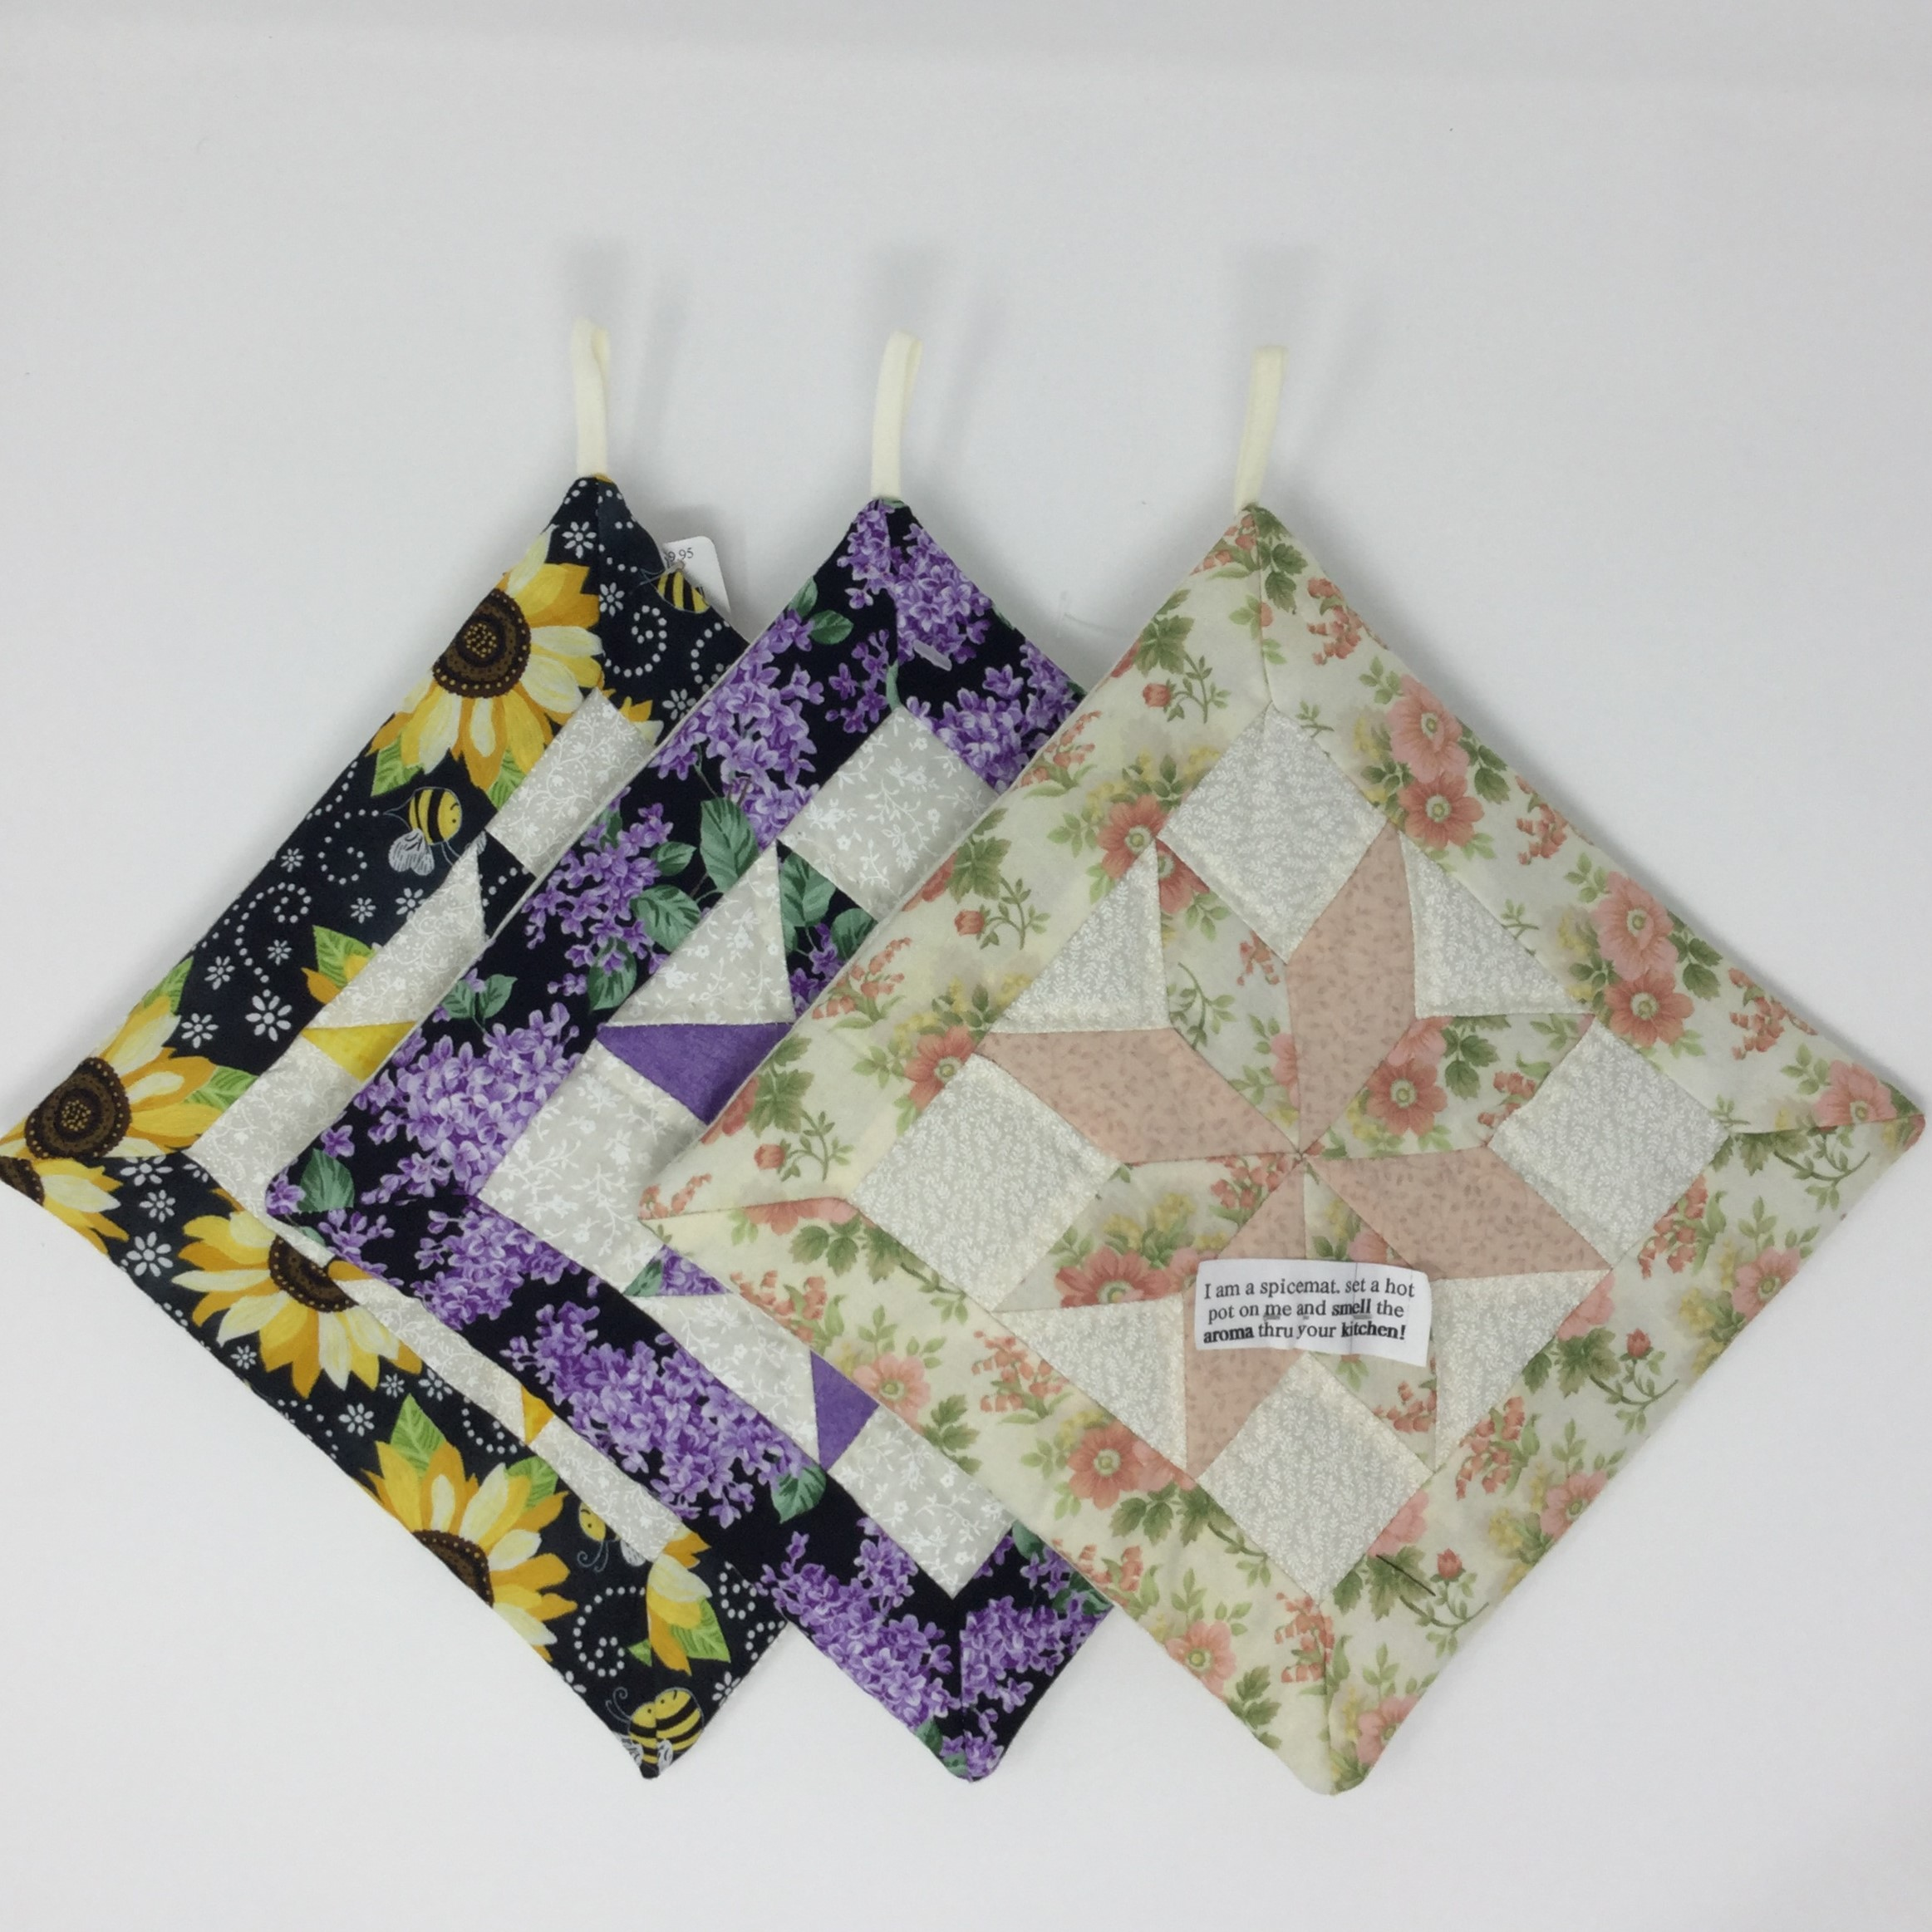 Quilted Star Potholder-Family Farm Handcrafts